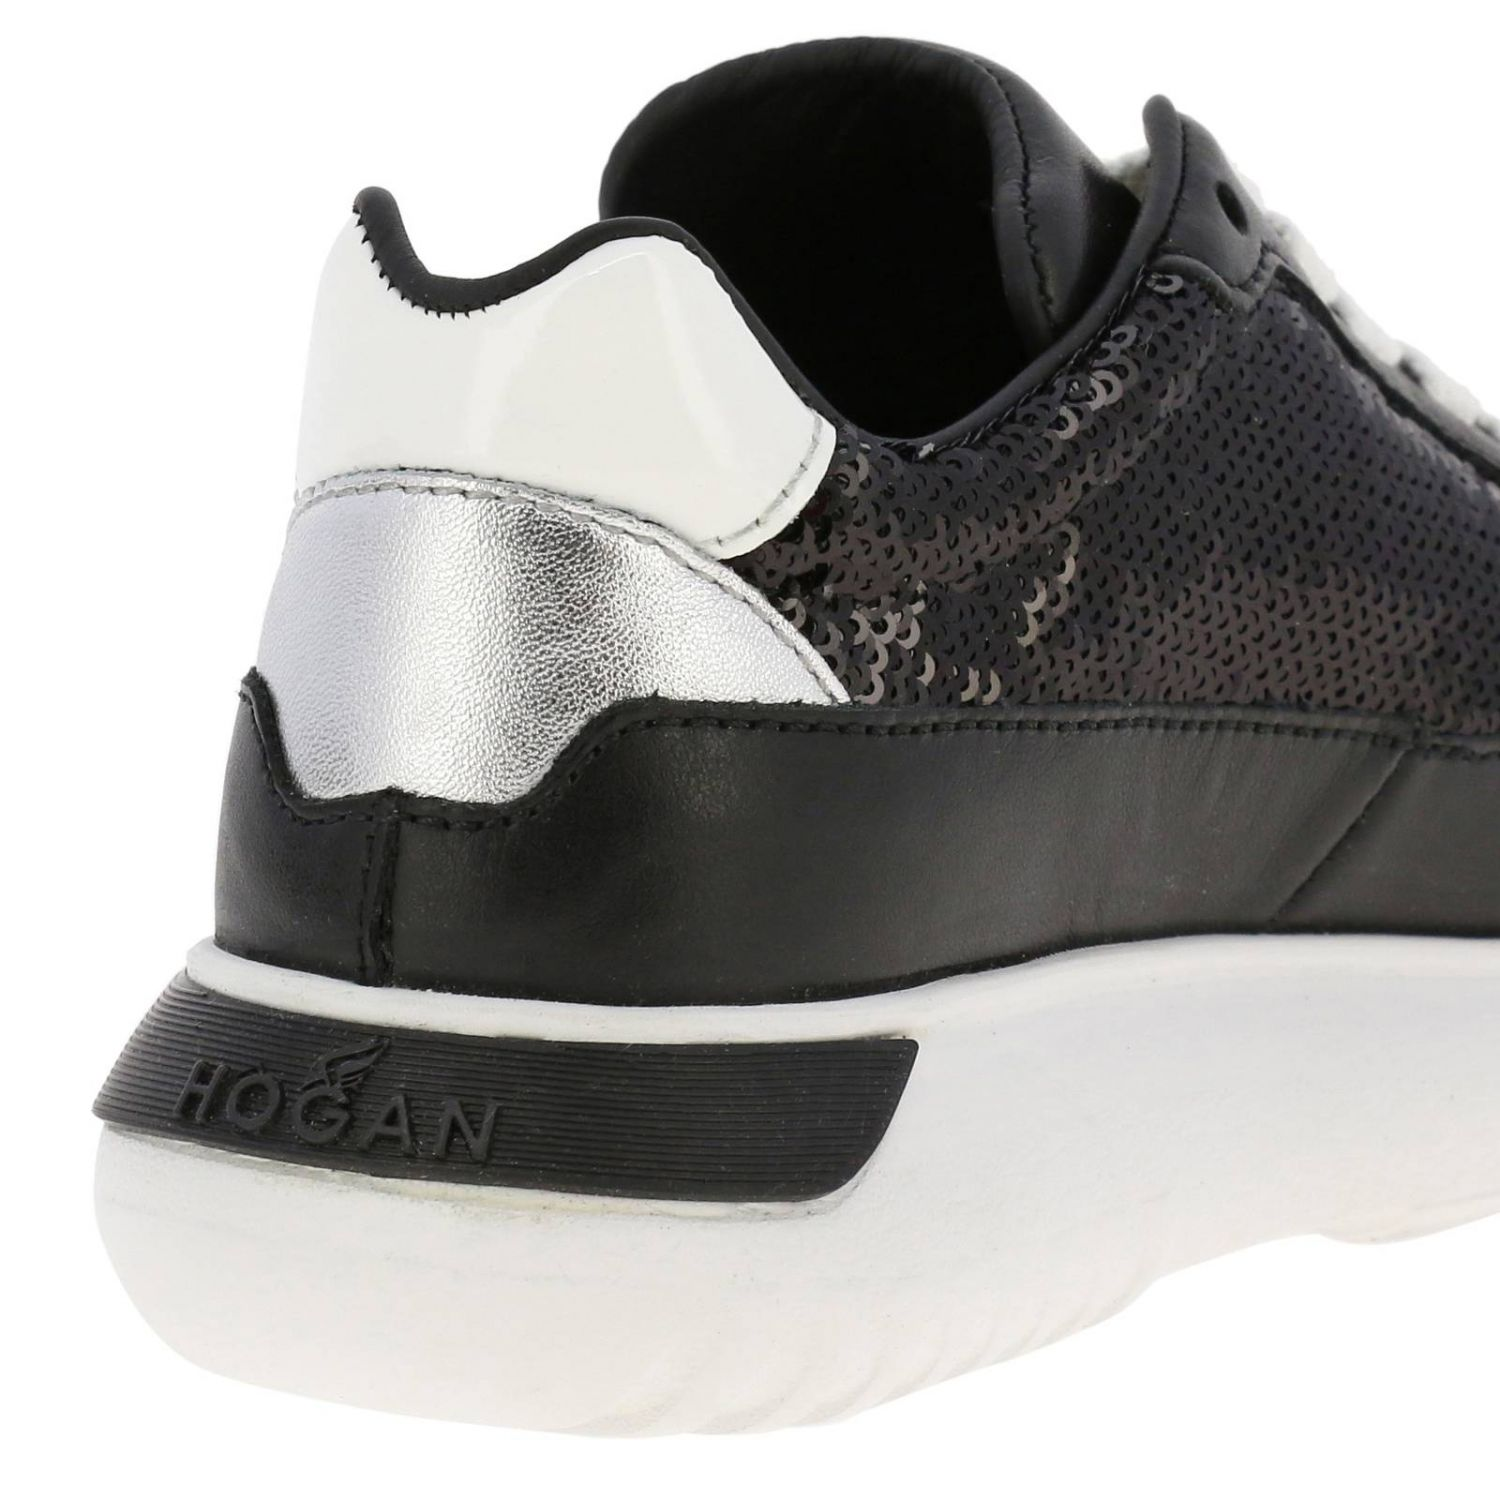 Cube Hogan sneakers in leather and sequins black 4